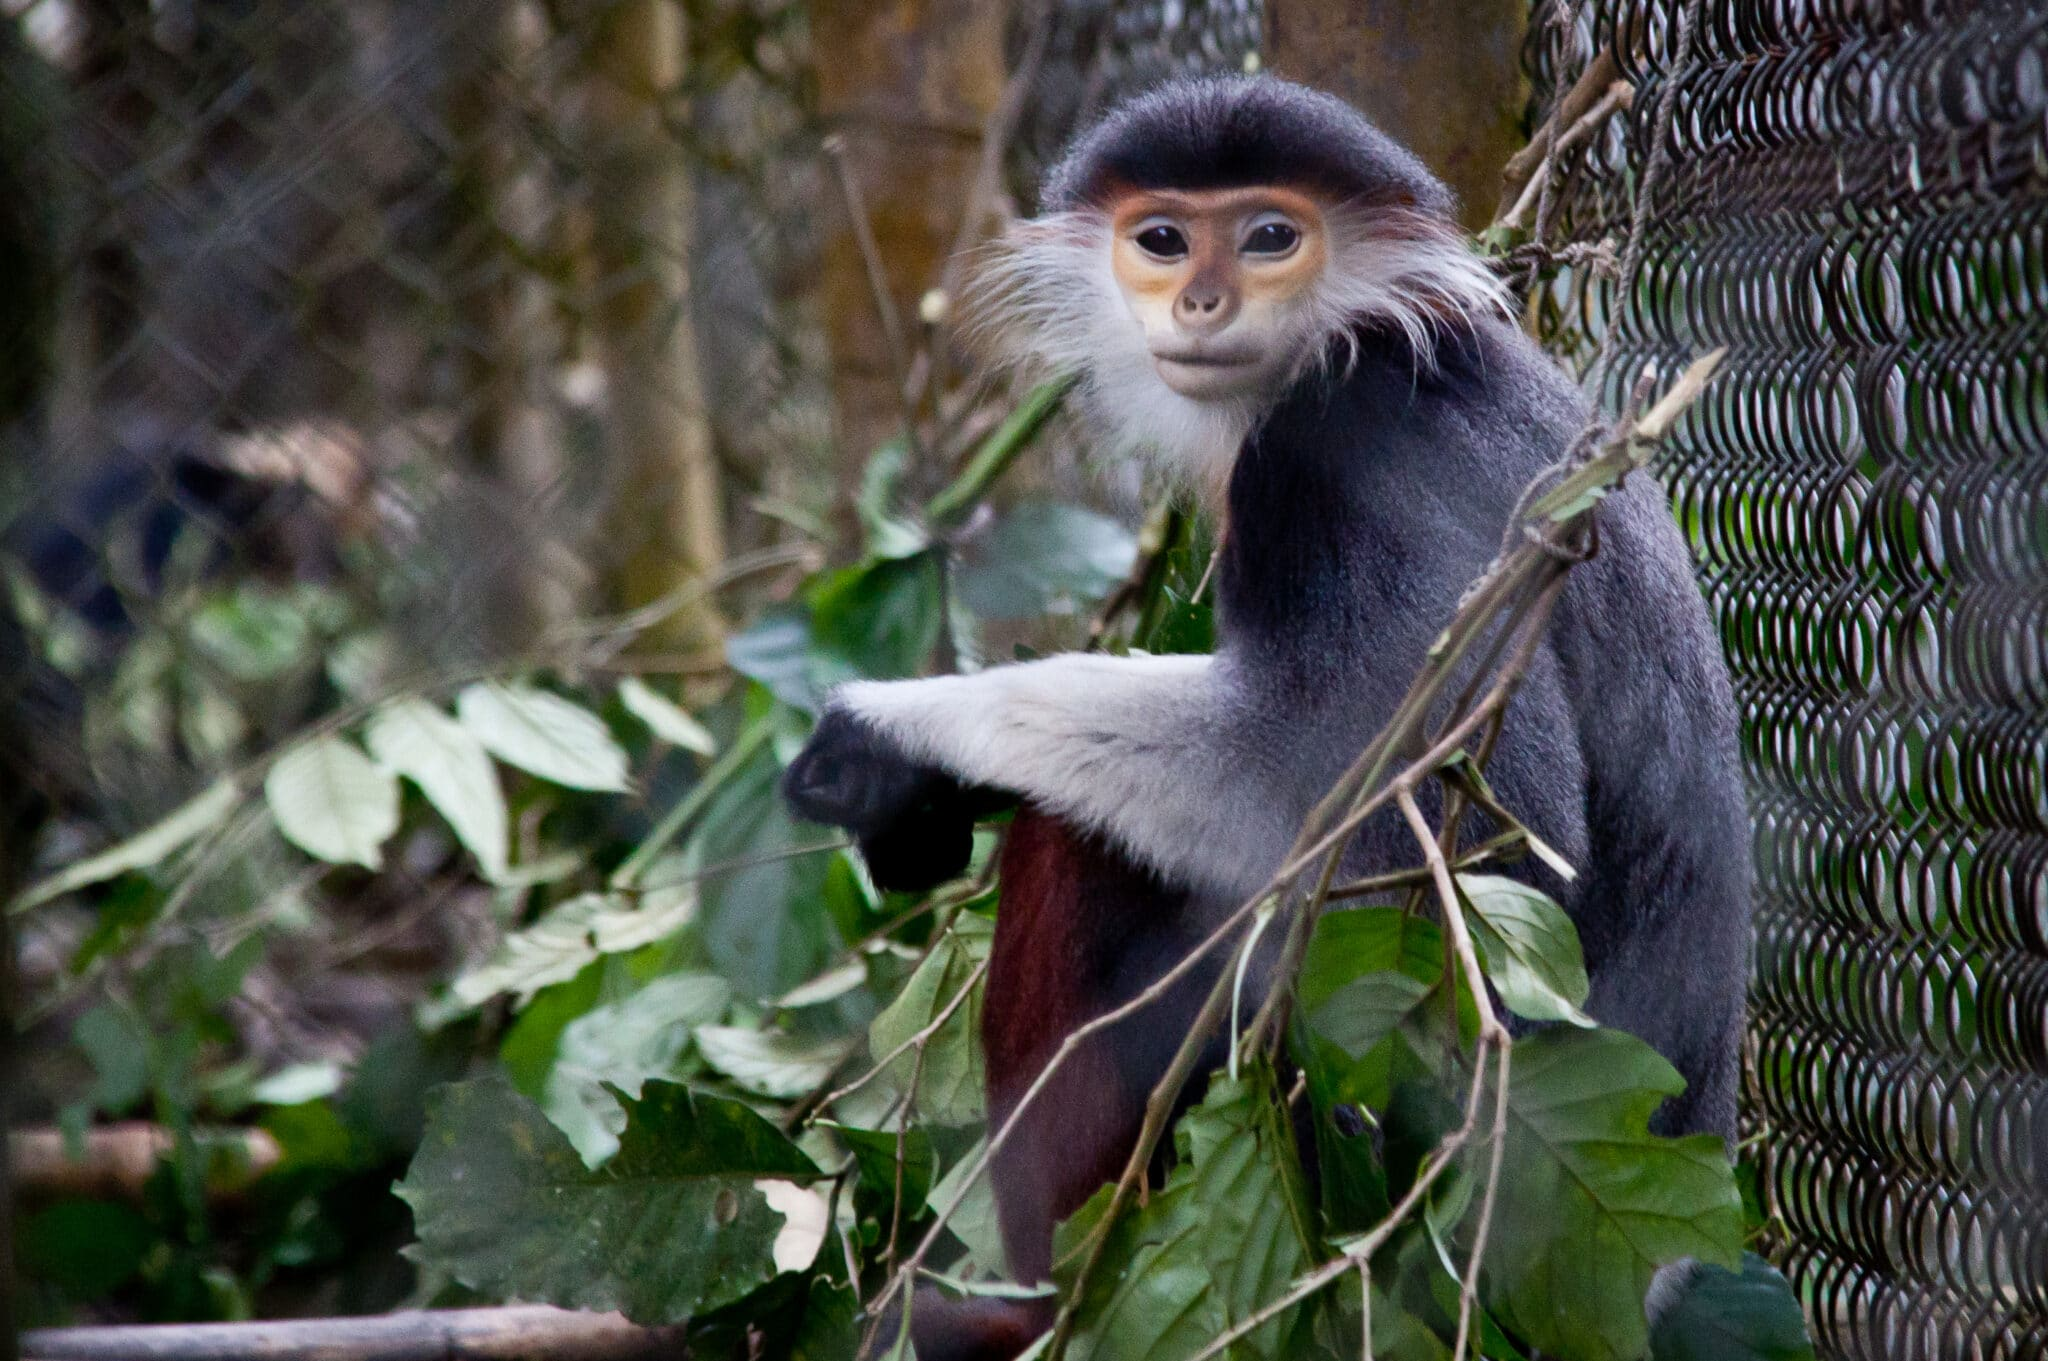 Grey-Shanked Douc Langur in Cuc Phuong National Park Vietnam